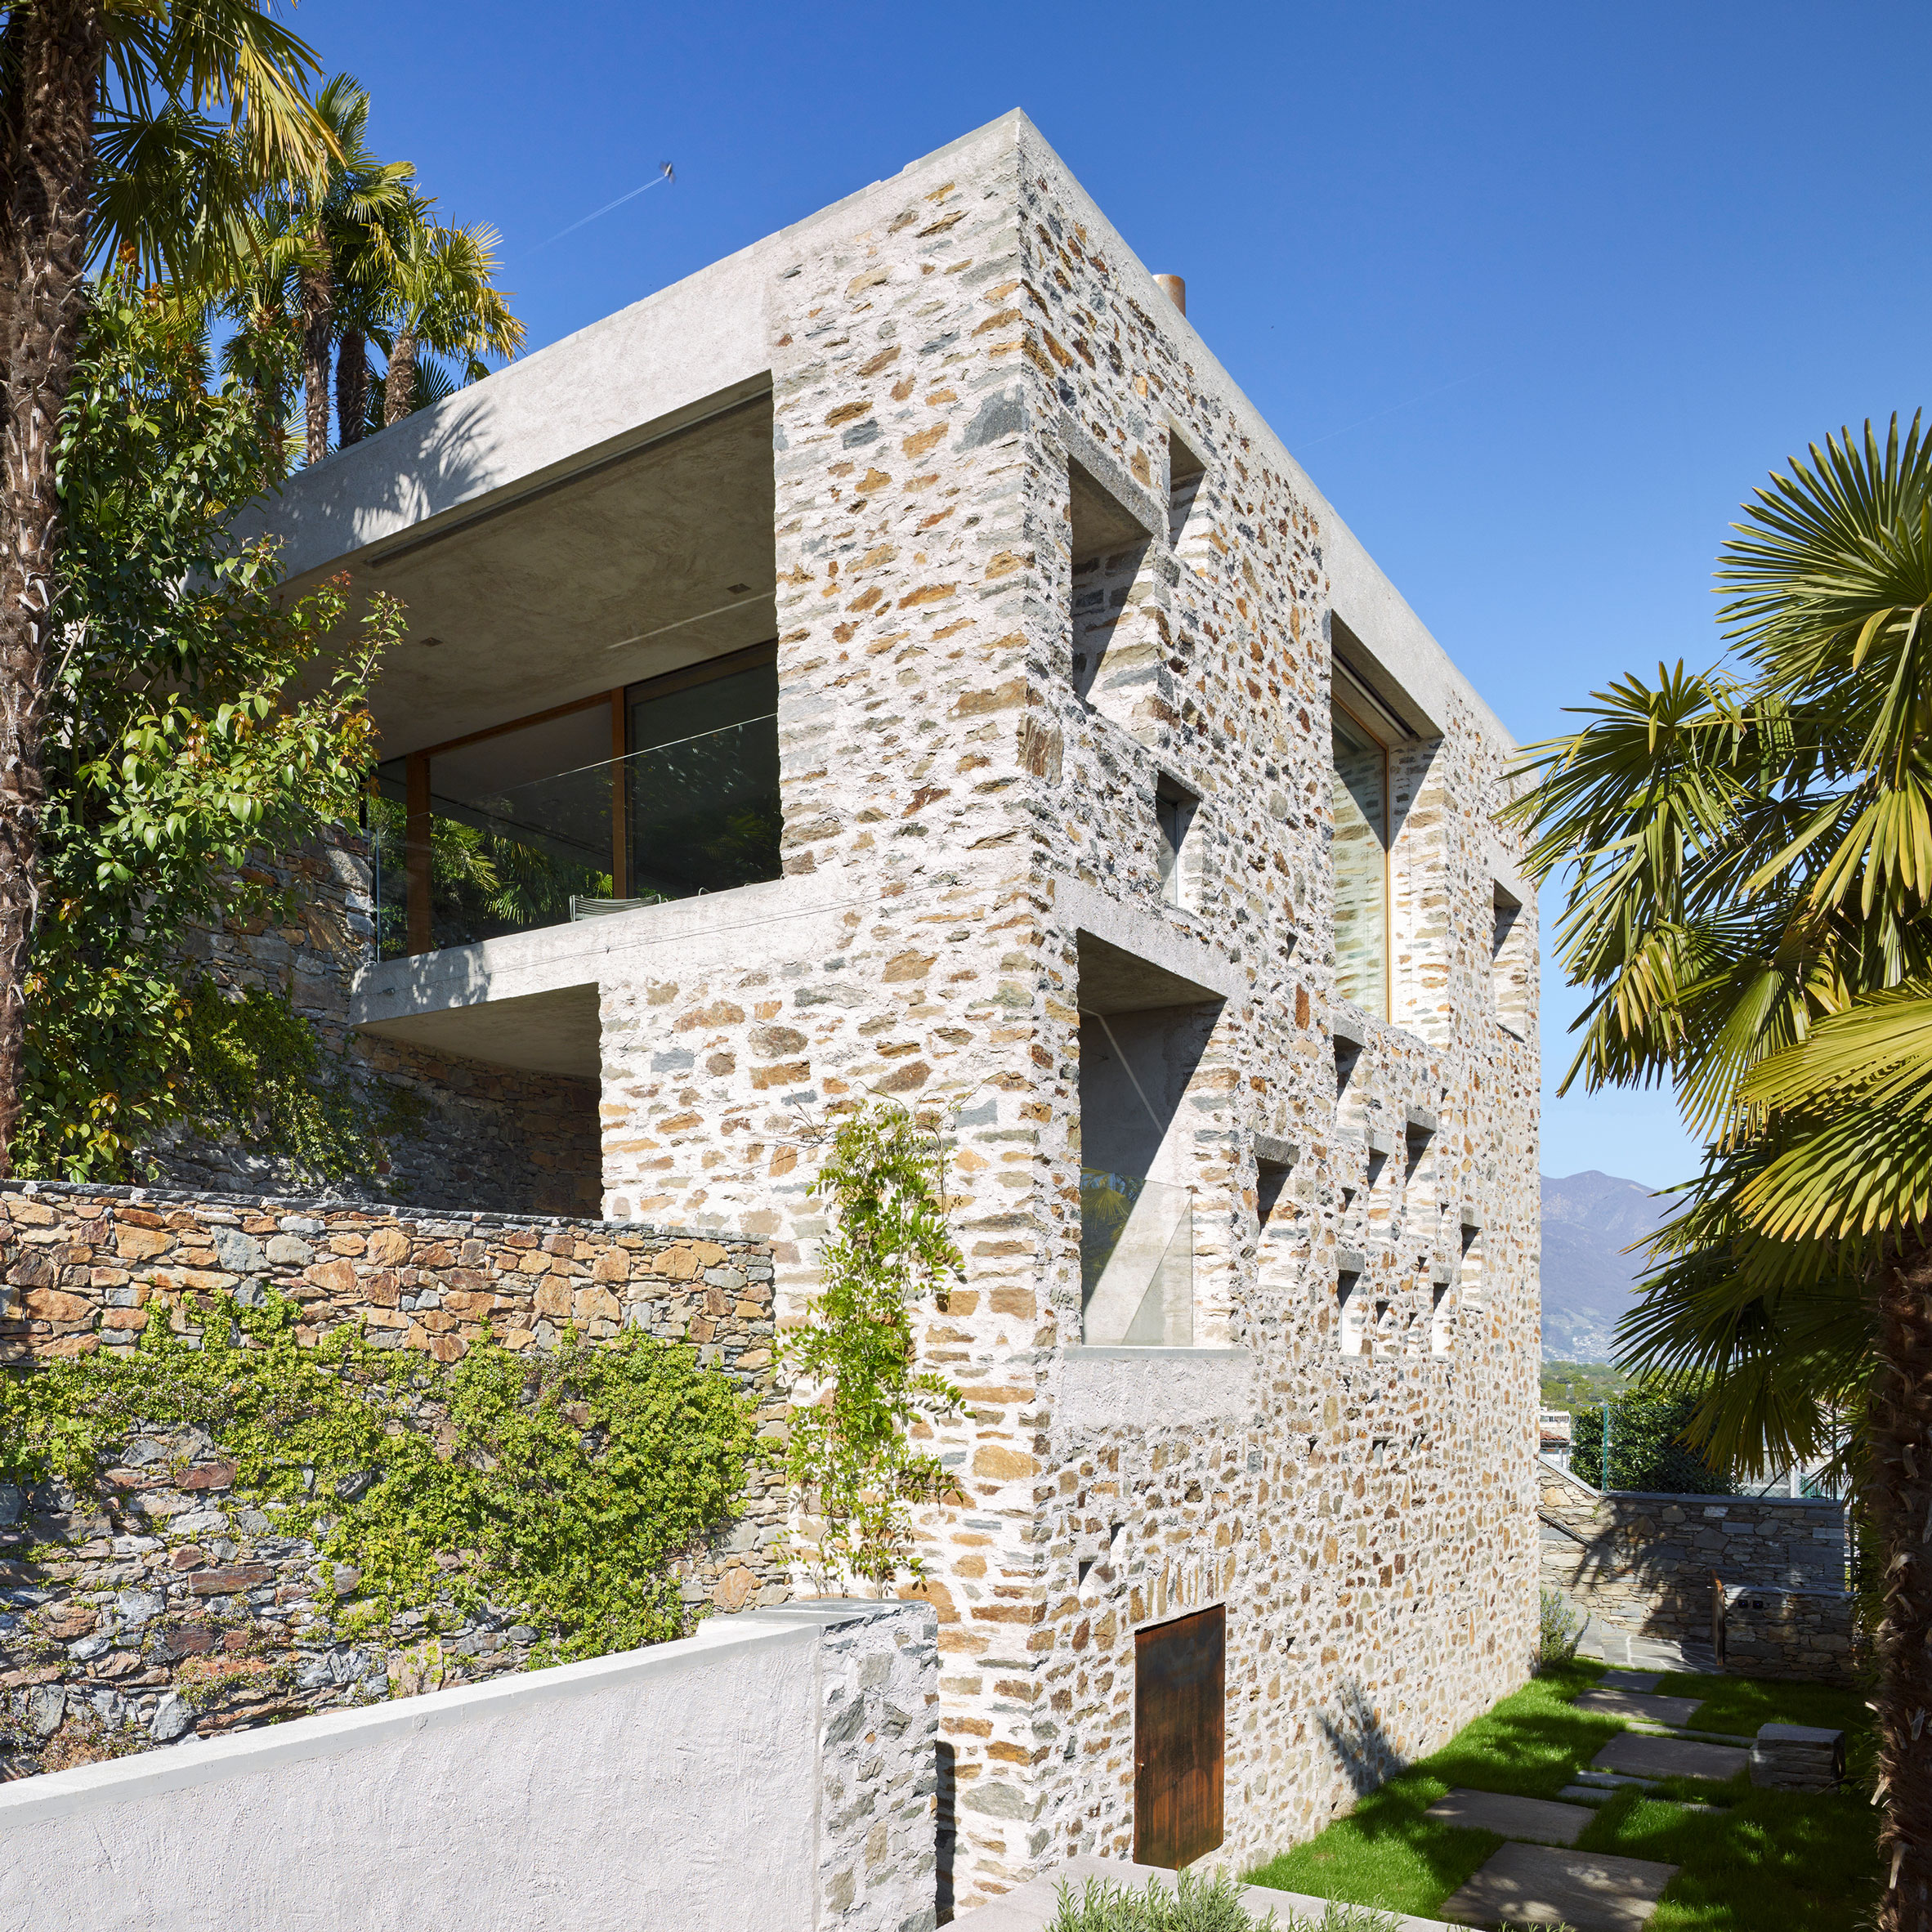 Wespi de meuron romeo architetti uses local stone and plaster for lakeside house in switzerland